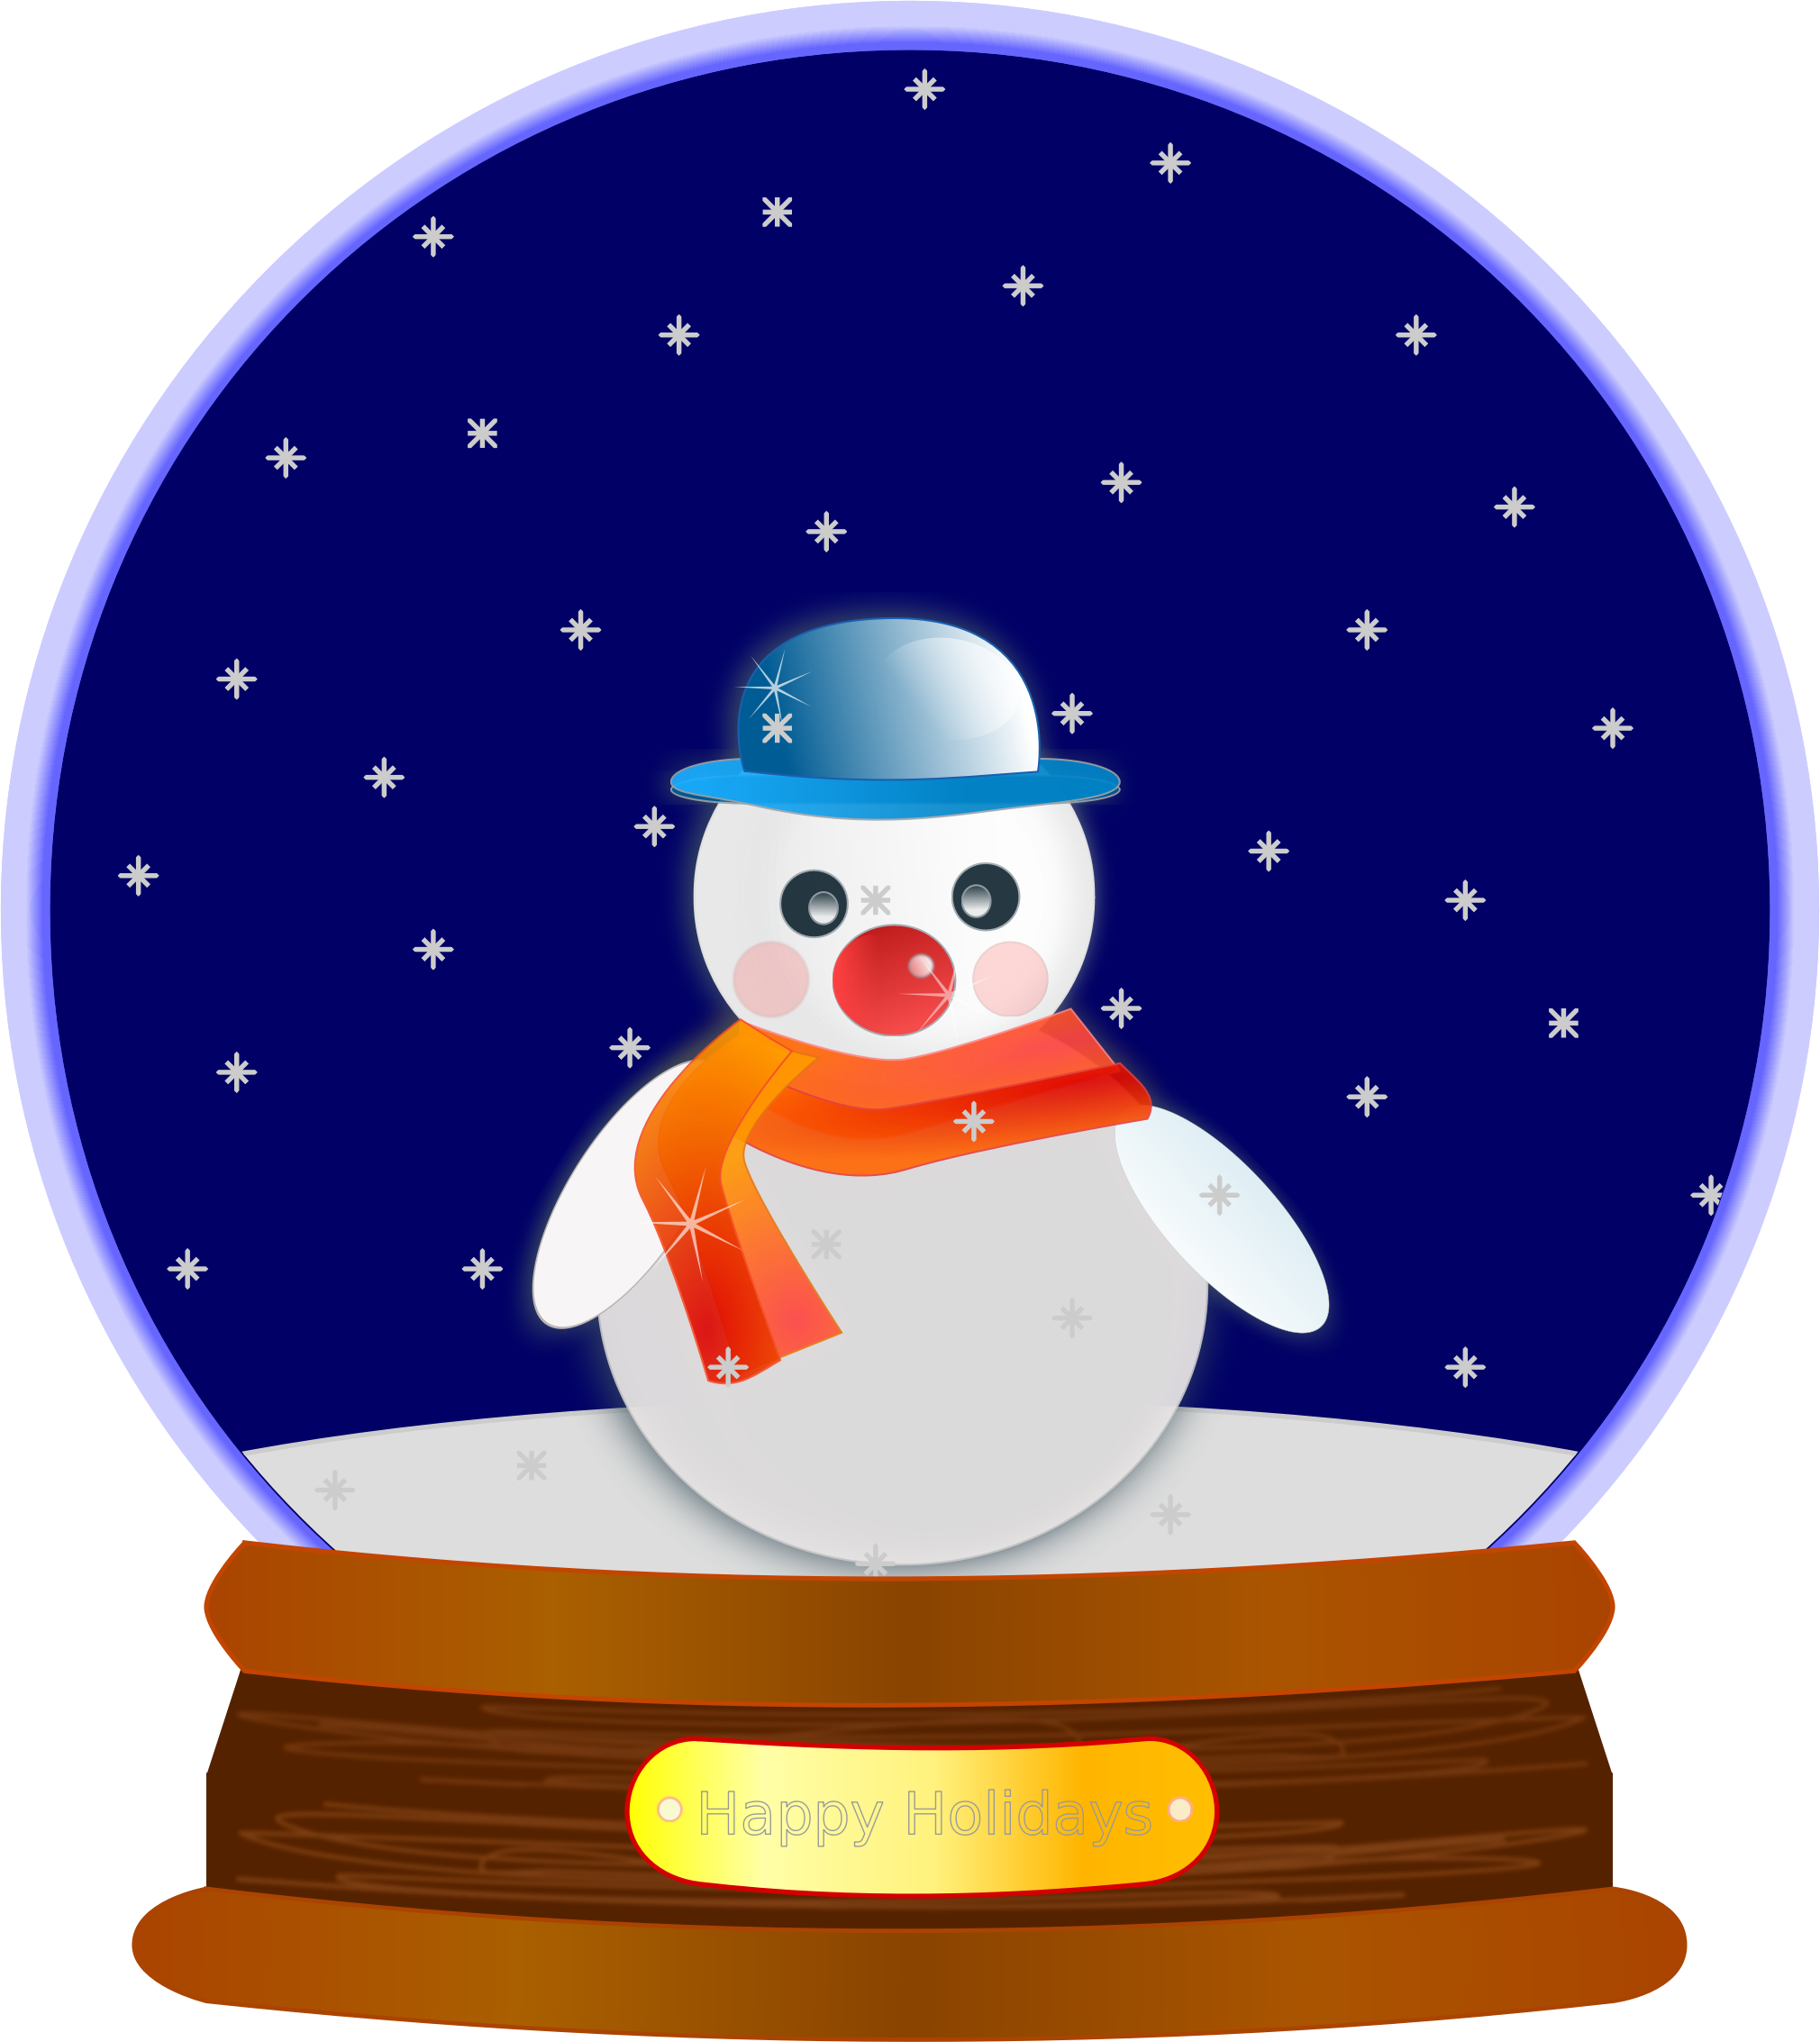 Animated winter clipart clip free Winter clipart animated, Winter animated Transparent FREE for ... clip free